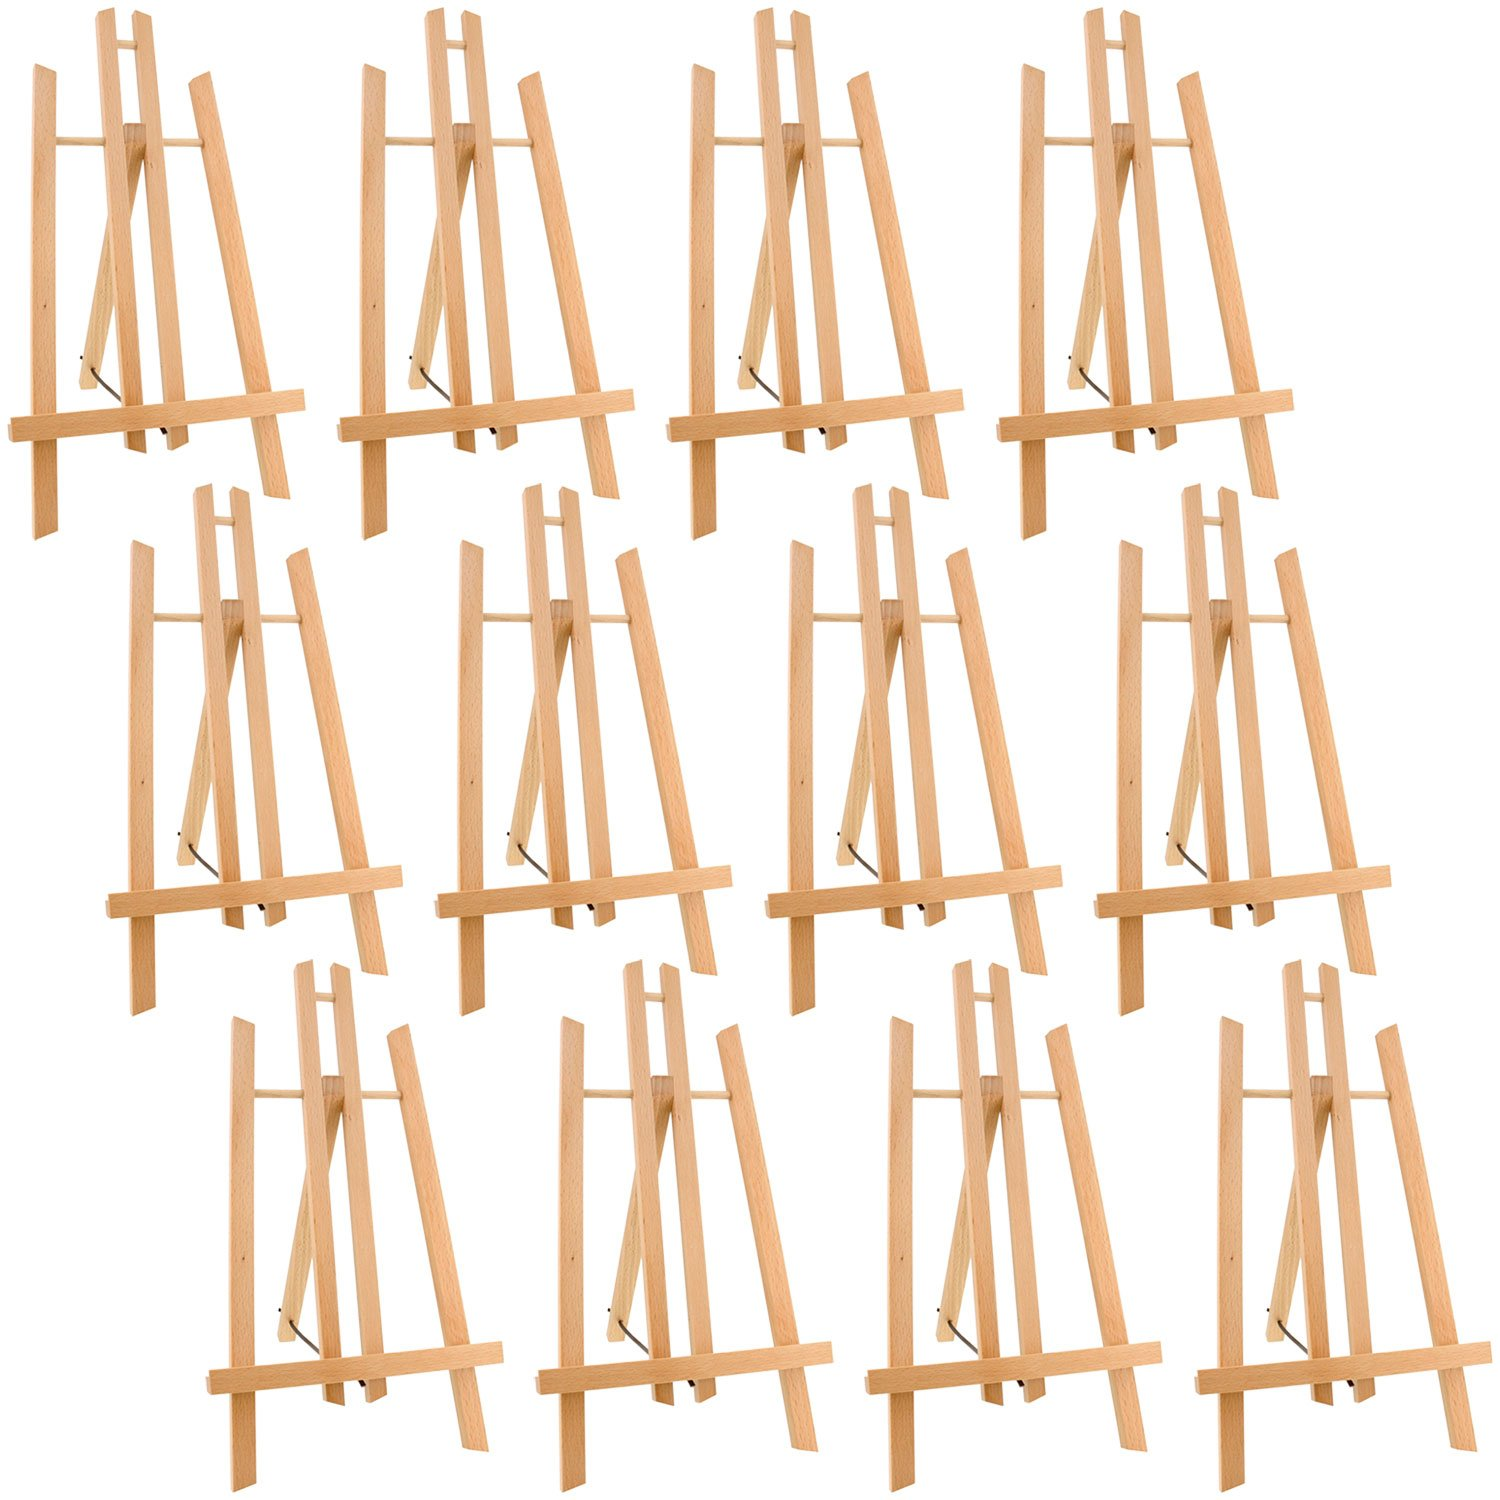 US Art Supply 14'' Tall Medium Tabletop Display A-Frame Easel (12-Easels) - Fits Canvas up to 12''